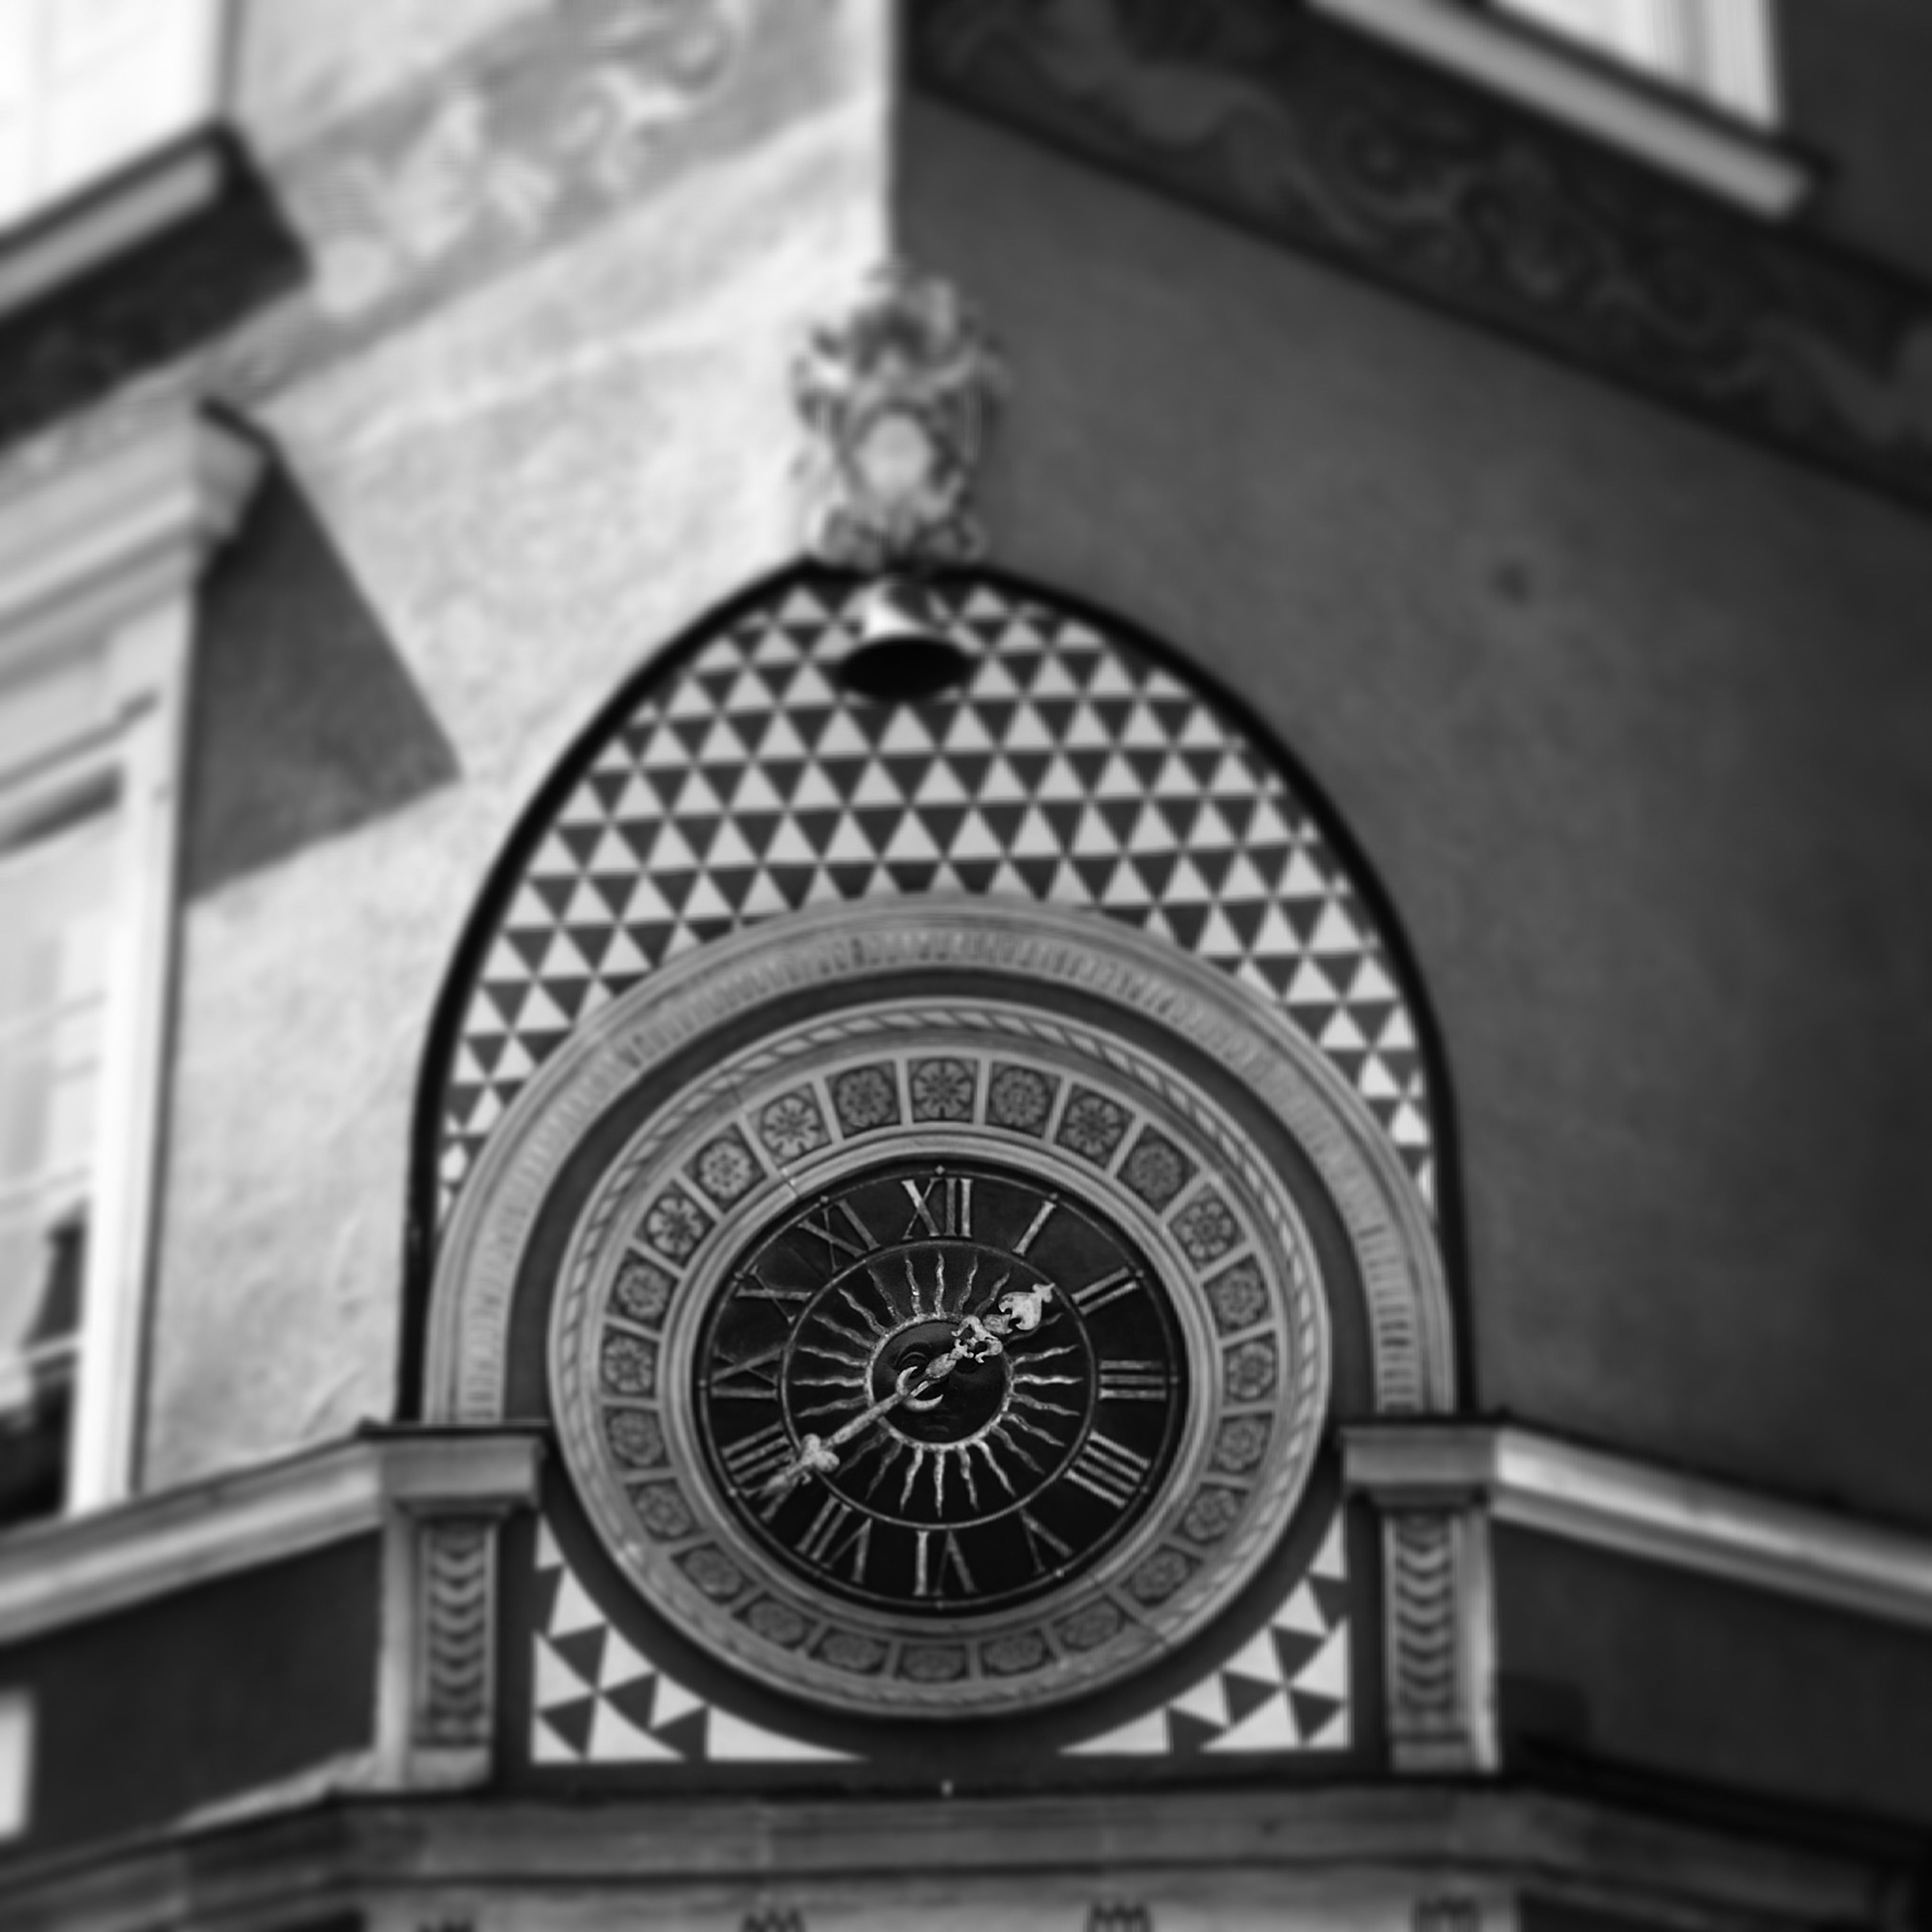 architecture, indoors, built structure, clock, low angle view, time, building exterior, old-fashioned, close-up, no people, focus on foreground, day, wall - building feature, circle, religion, pattern, retro styled, church, ornate, antique